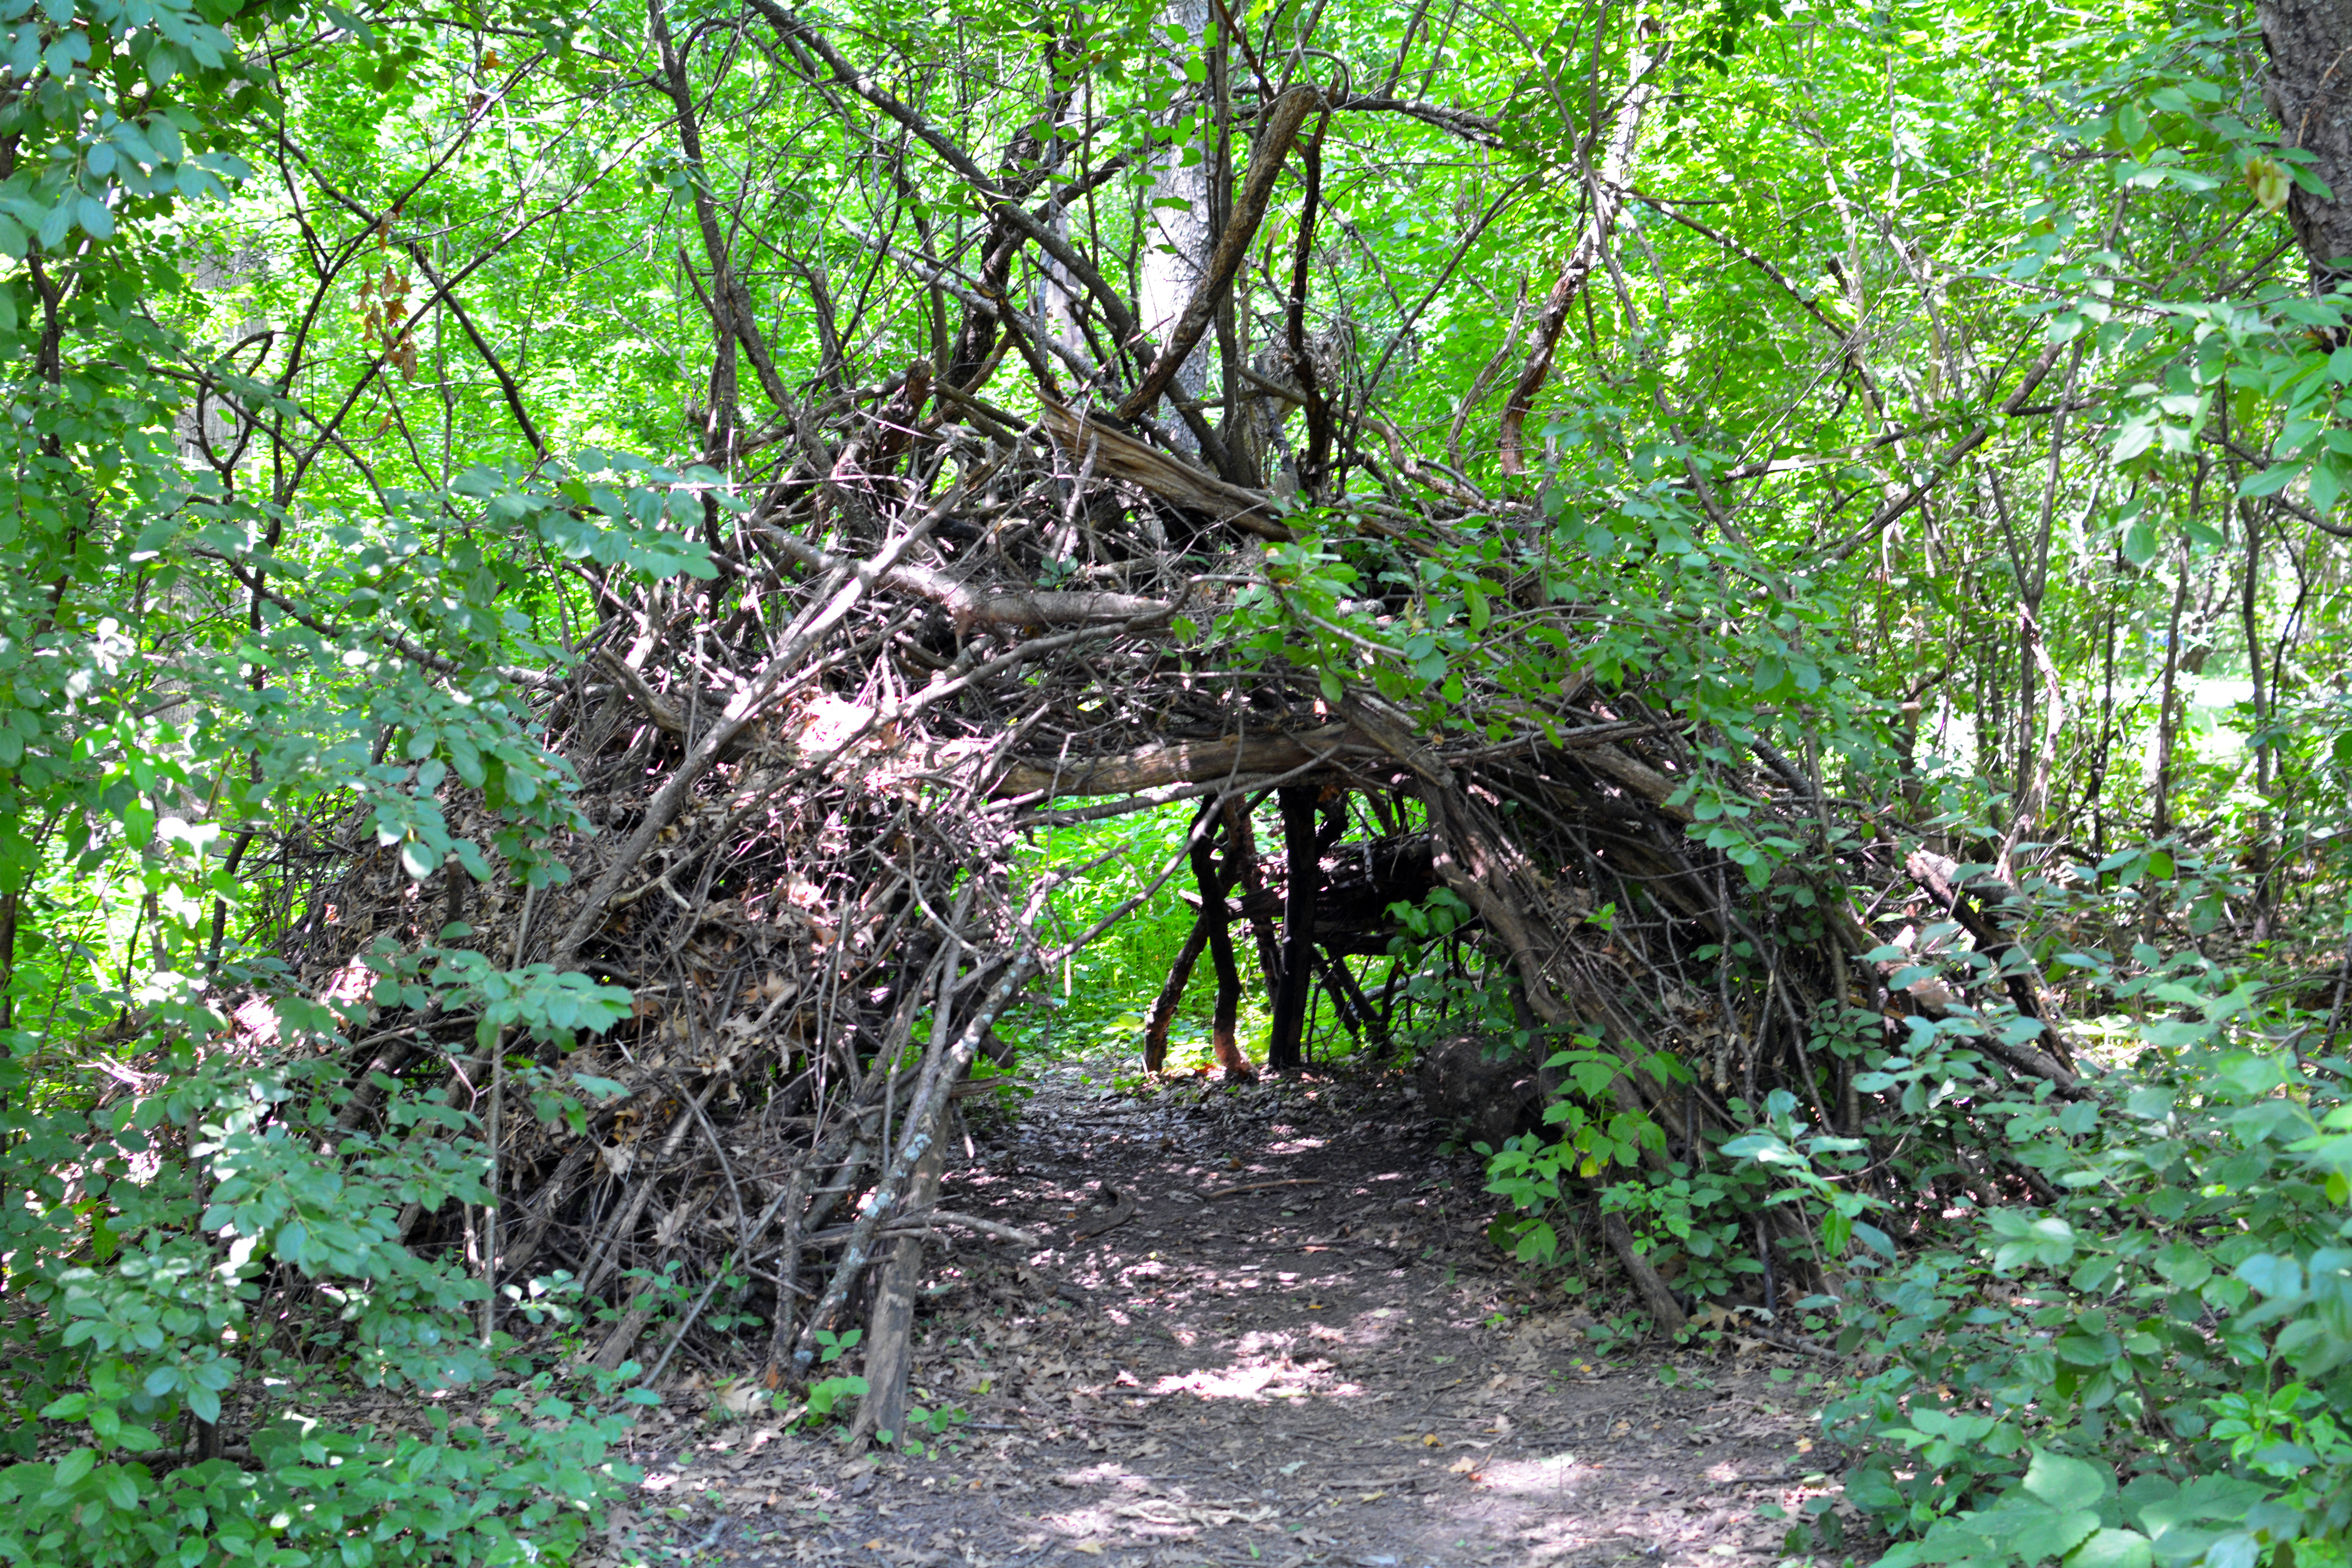 A hideaway somewhere in the Estabrook Park Disc Golf Course